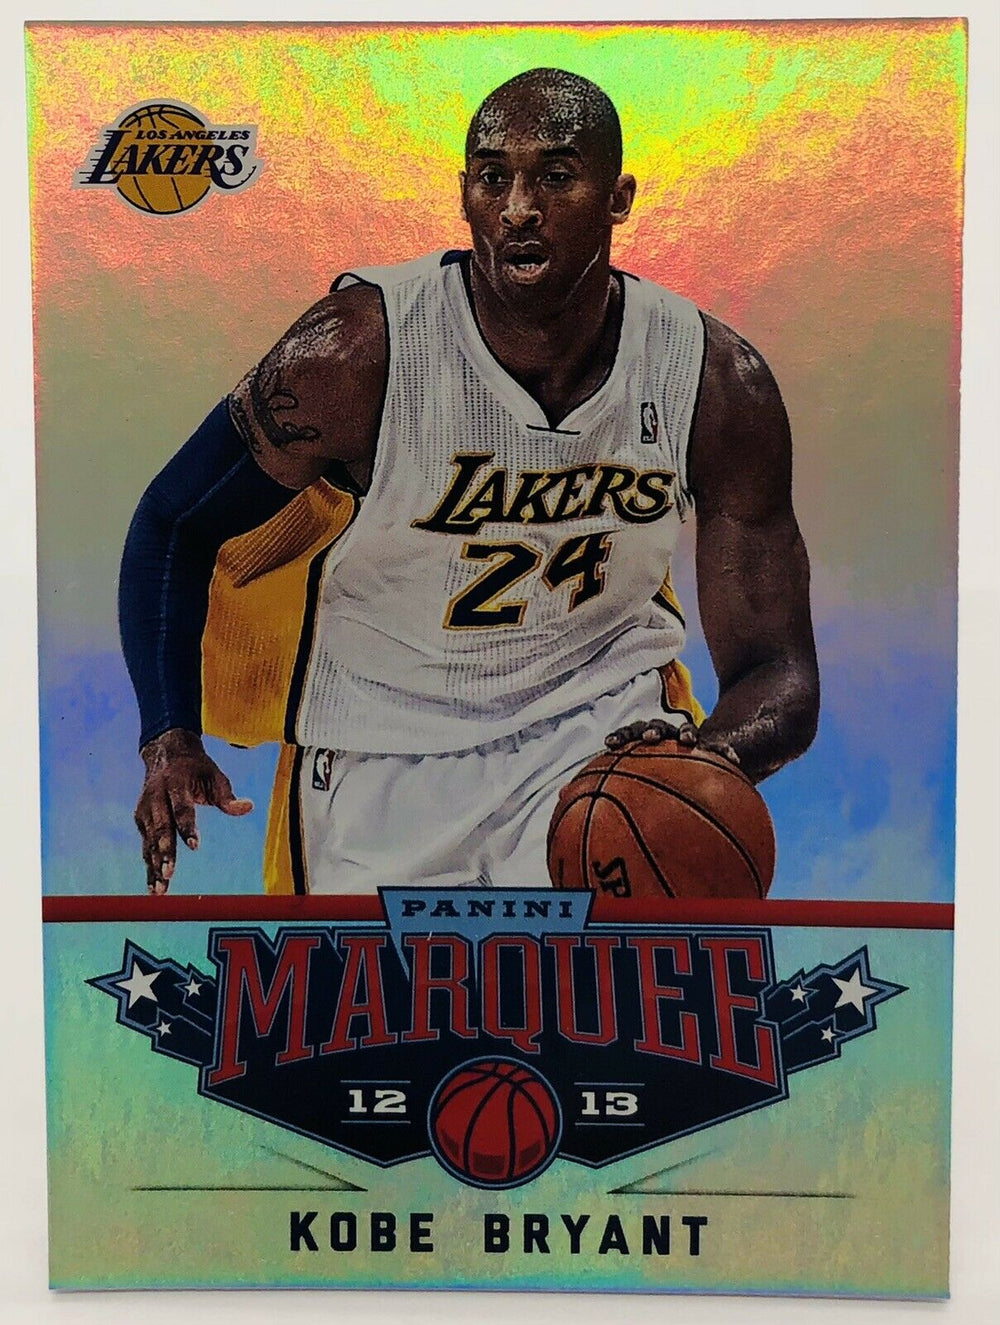 Kobe Bryant 2012 2013 Panini Marquee Basketball Series Mint Card #1